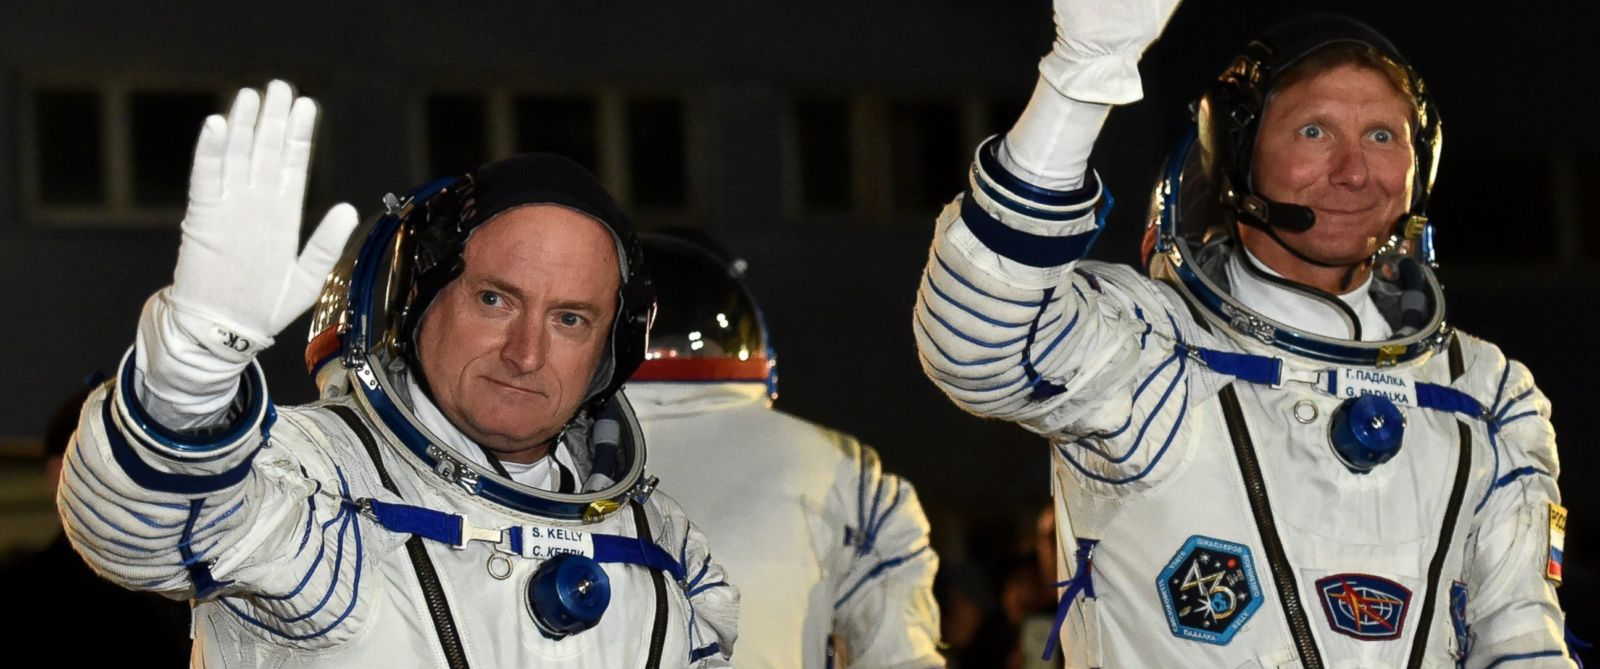 PHOTO: US astronaut Scott Kelly and Russian cosmonaut Gennady Padalka wave after their space suits were tested at the Russian-leased Baikonur cosmodrome, March 27, 2015.